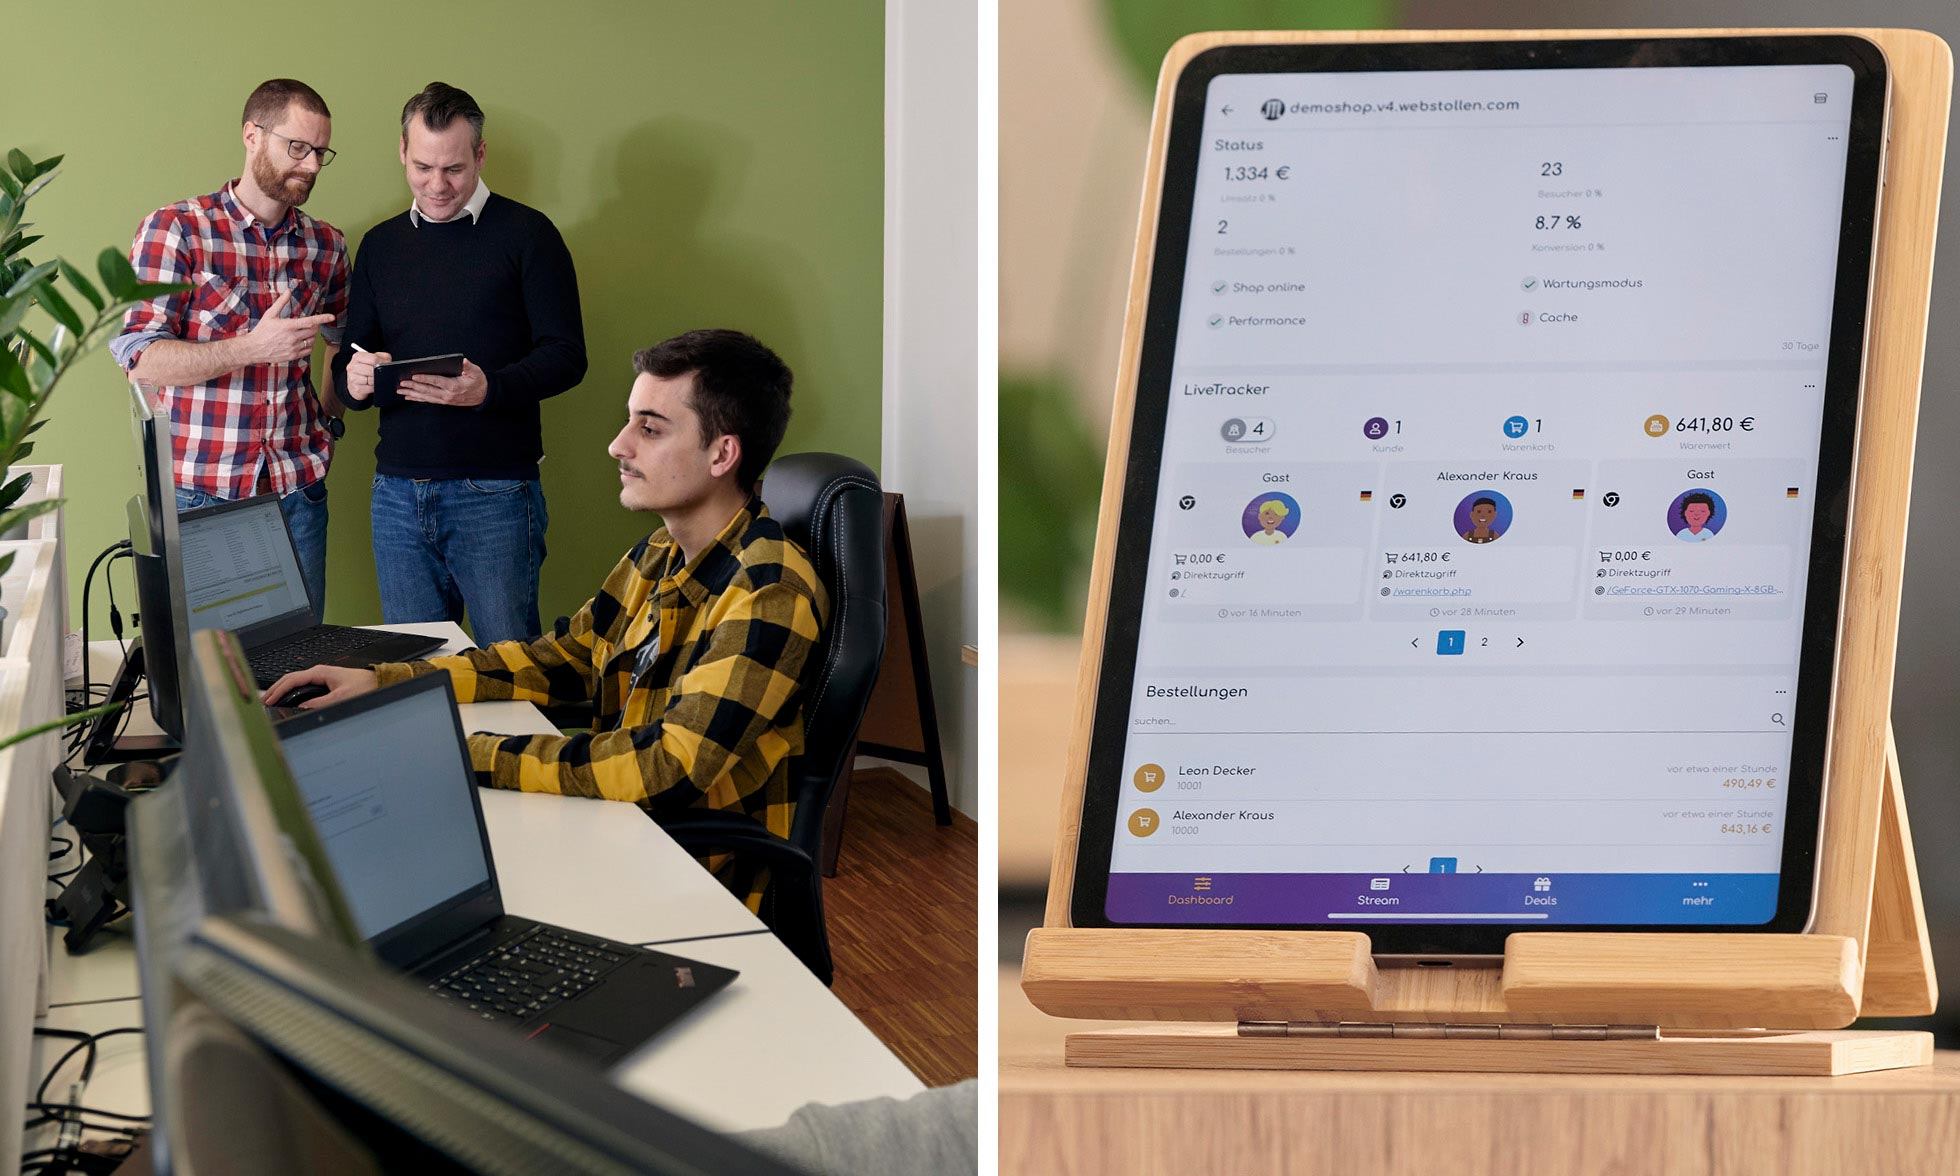 The founders holding an iPad in the background (left picture). The dash.bar app running on an iPad that is sitting vertically on a wooden table(right picture).